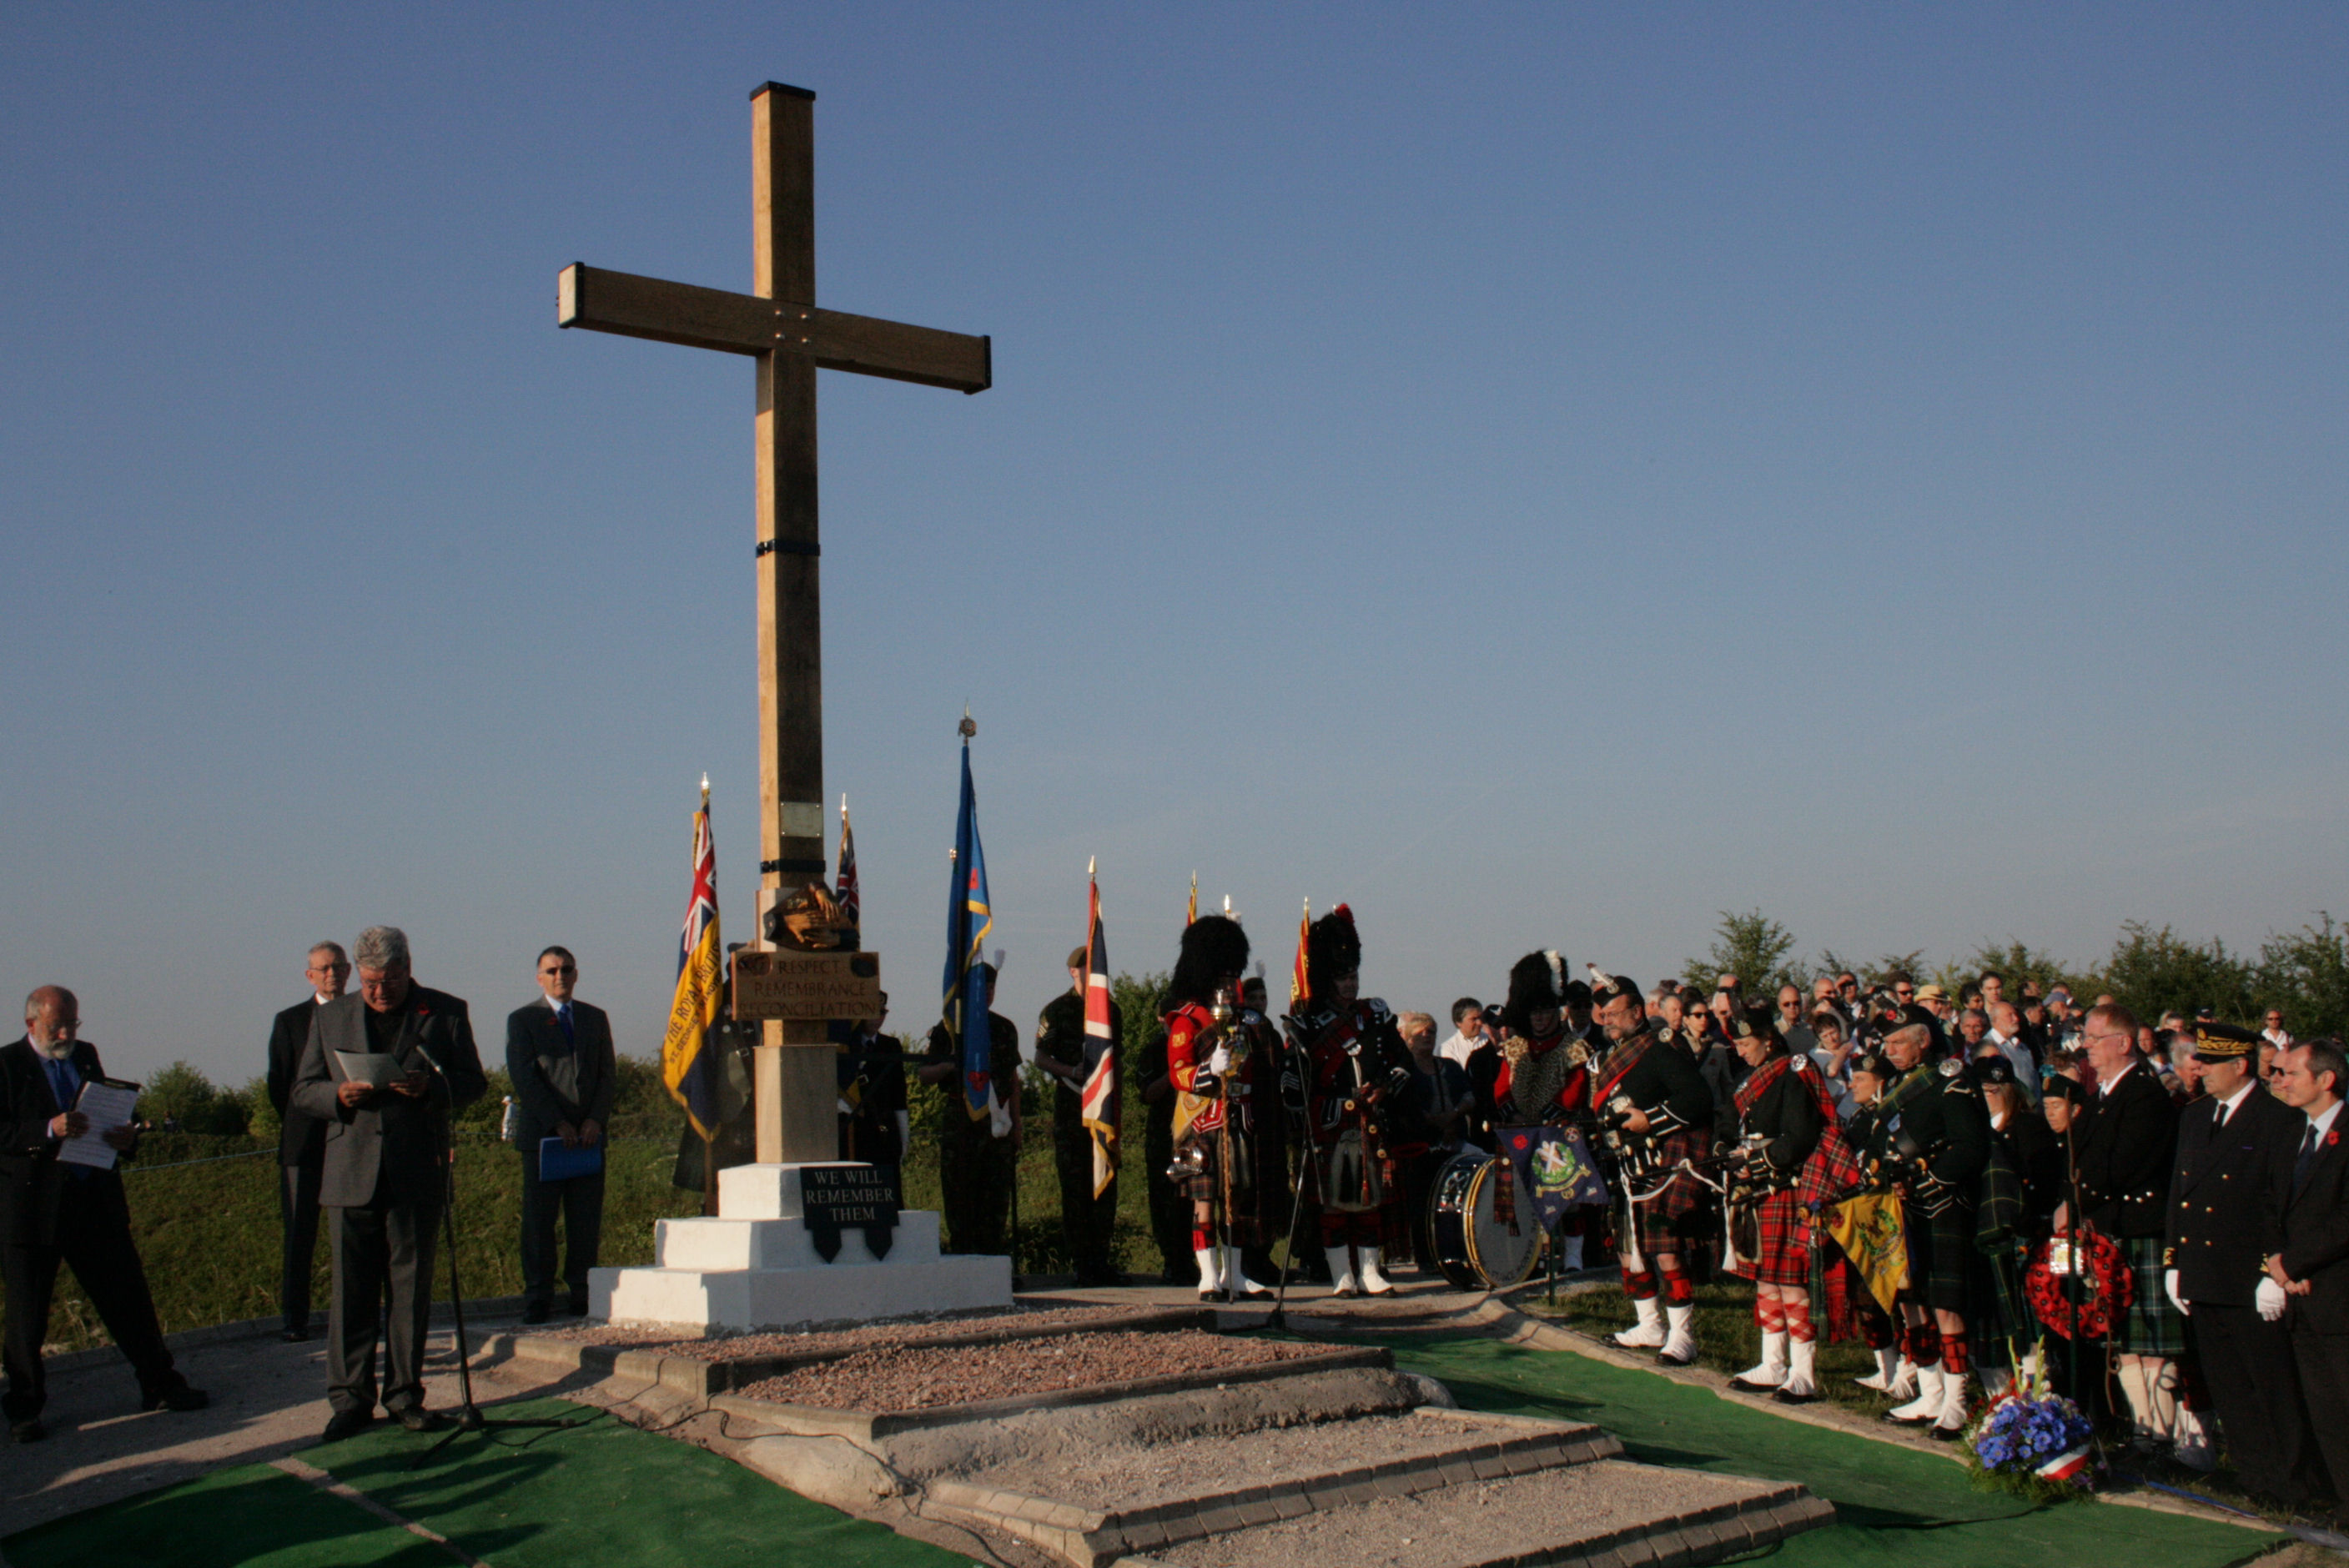 1st July 2011 7.30am The Remembrance Service begins.